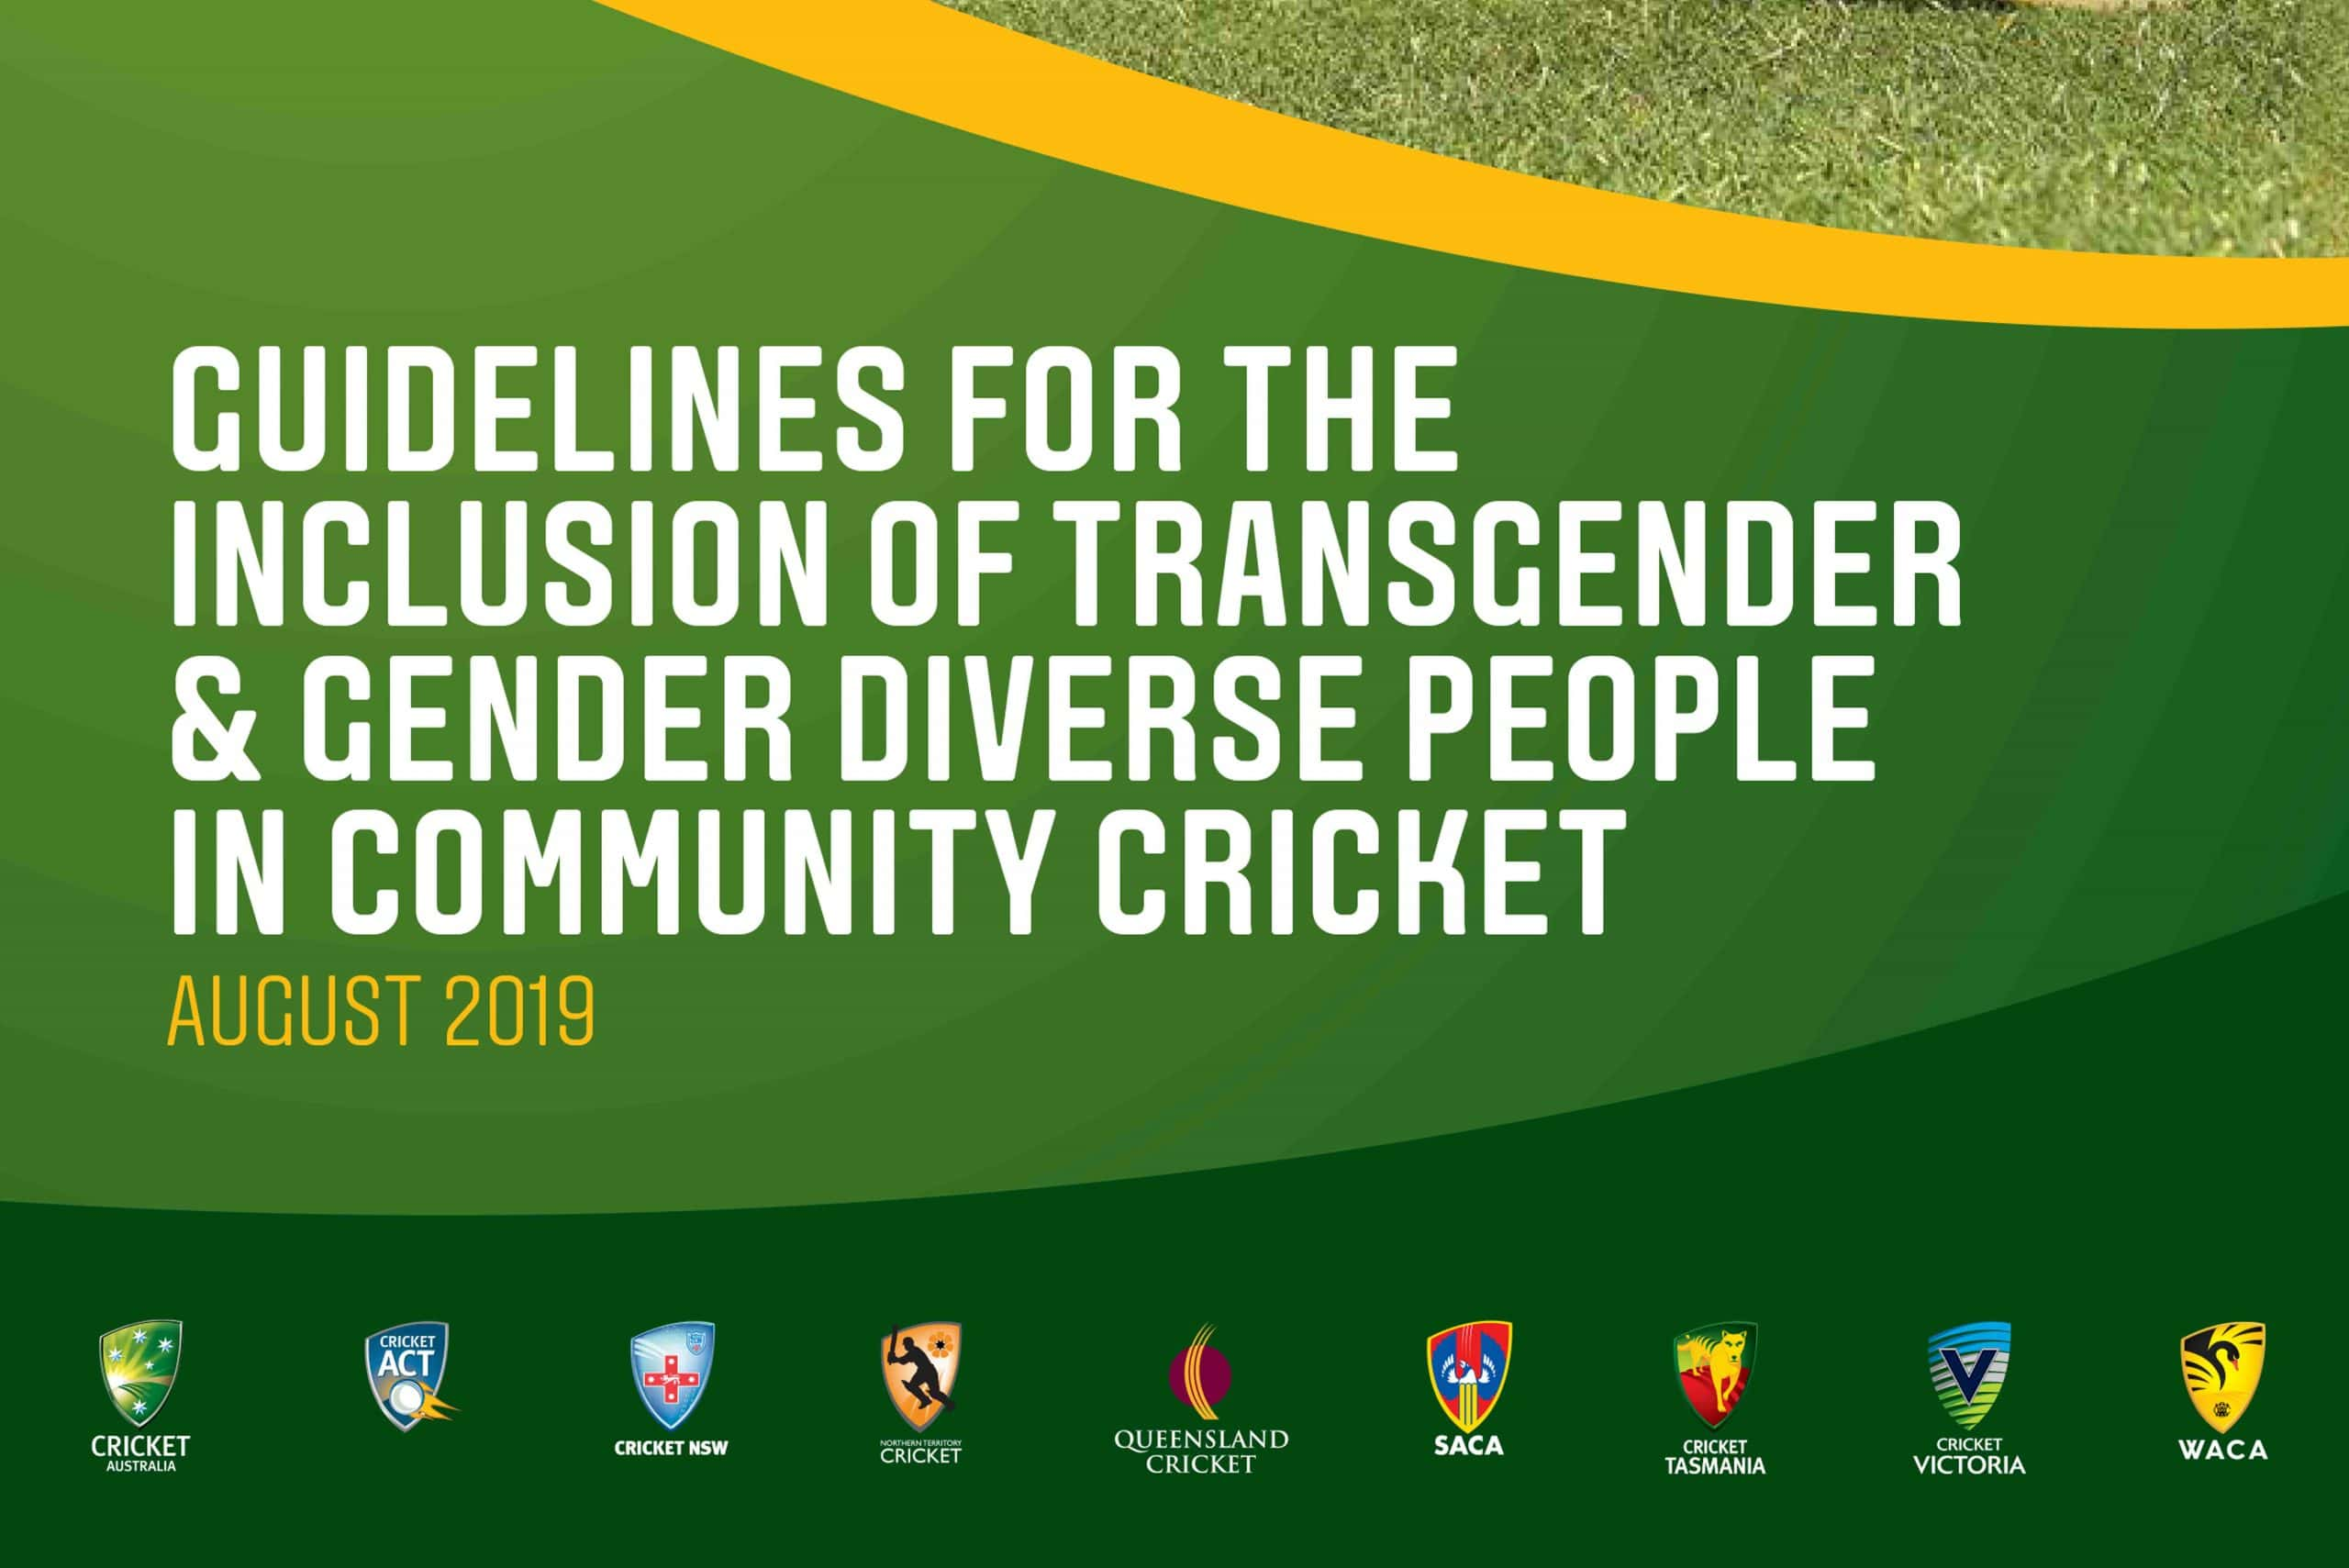 Image has green back ground with white text that readss Guidelines for the inclusion of Transgender and Gender Diverse people in community cricket August 2019. Logos for each of the State cricket organisations appear at the bottom of image.